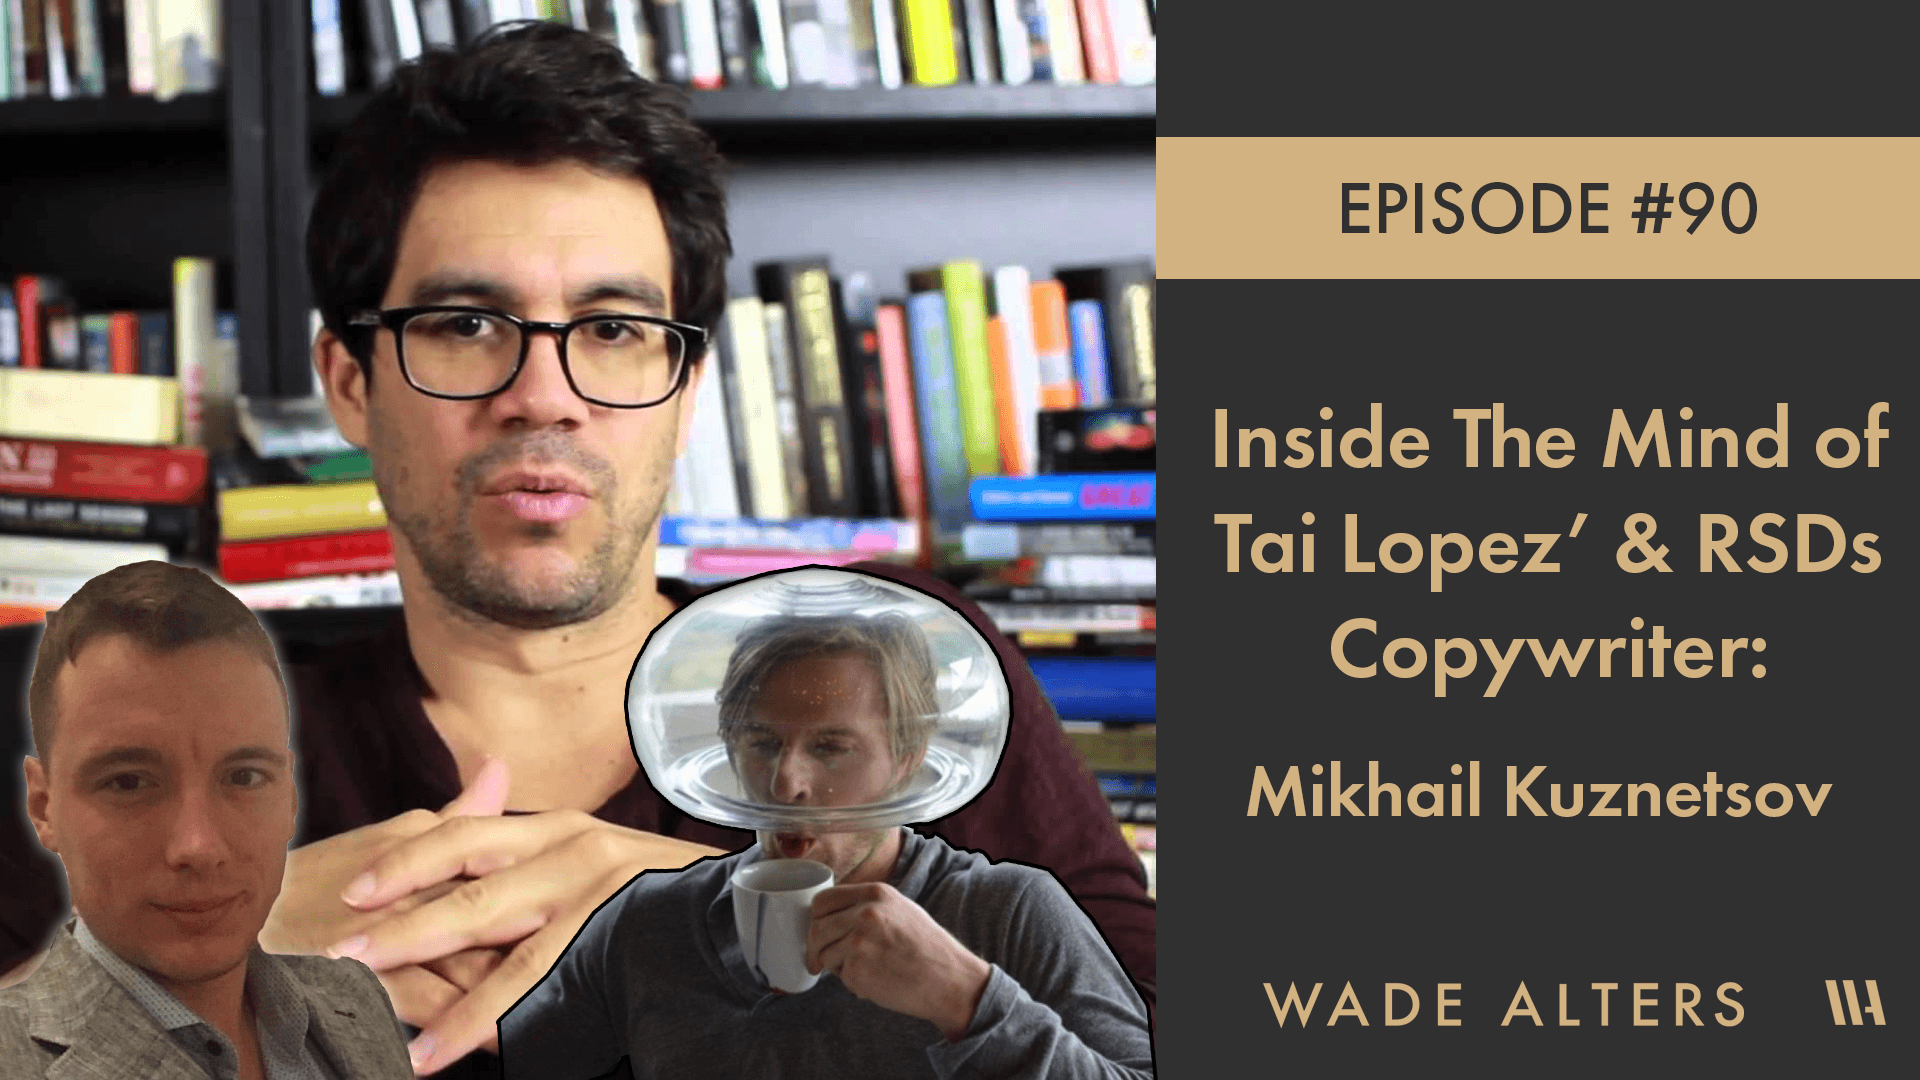 Inside The Mind of Tai Lopez's Copywriter: Mikhail Kuznetsov